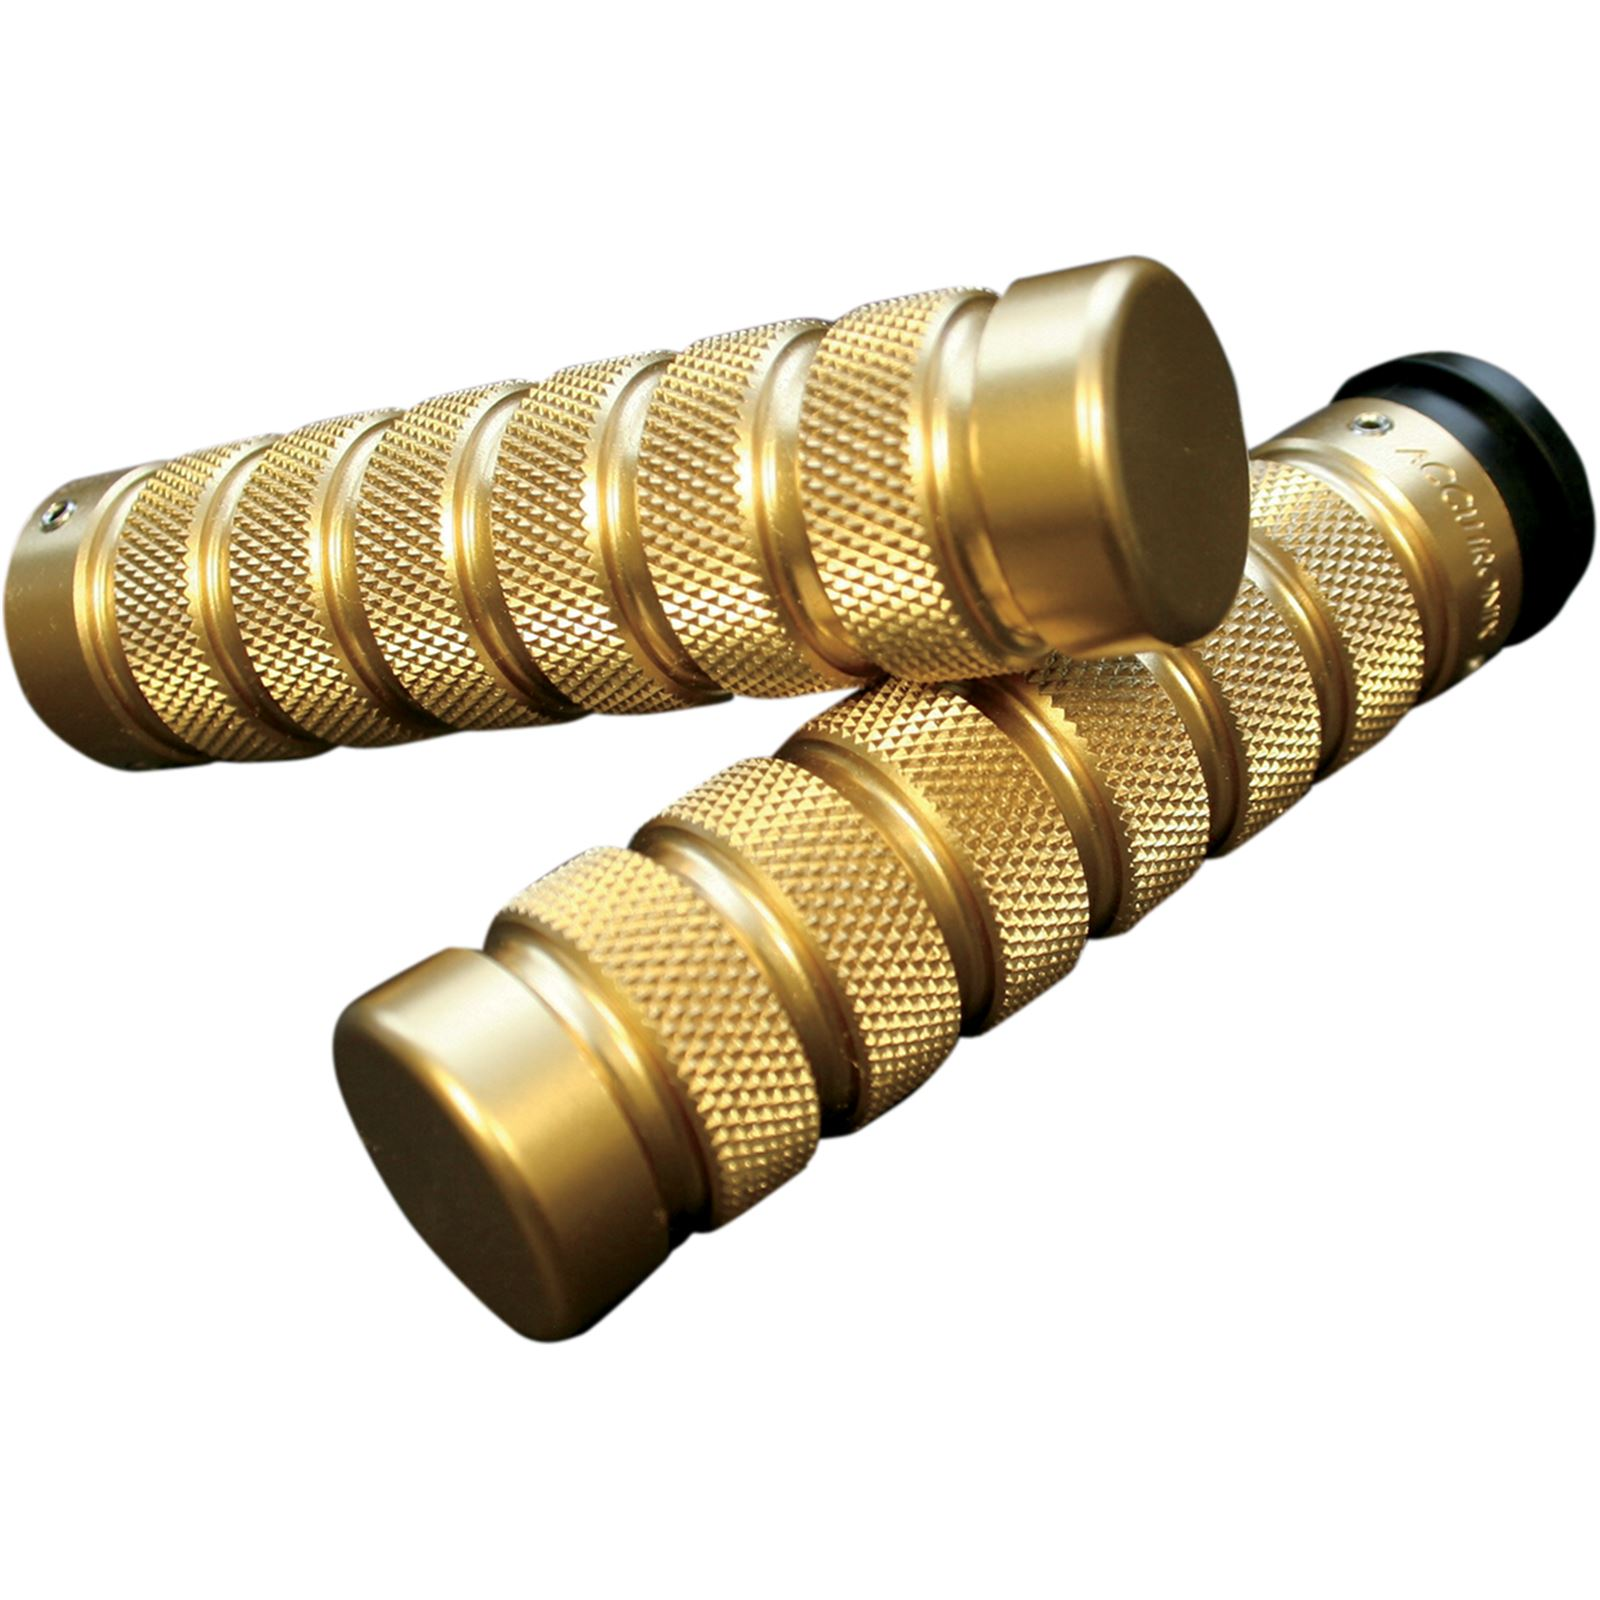 Accutronix Brass Knurled Notched Grips for Throttle by Wire